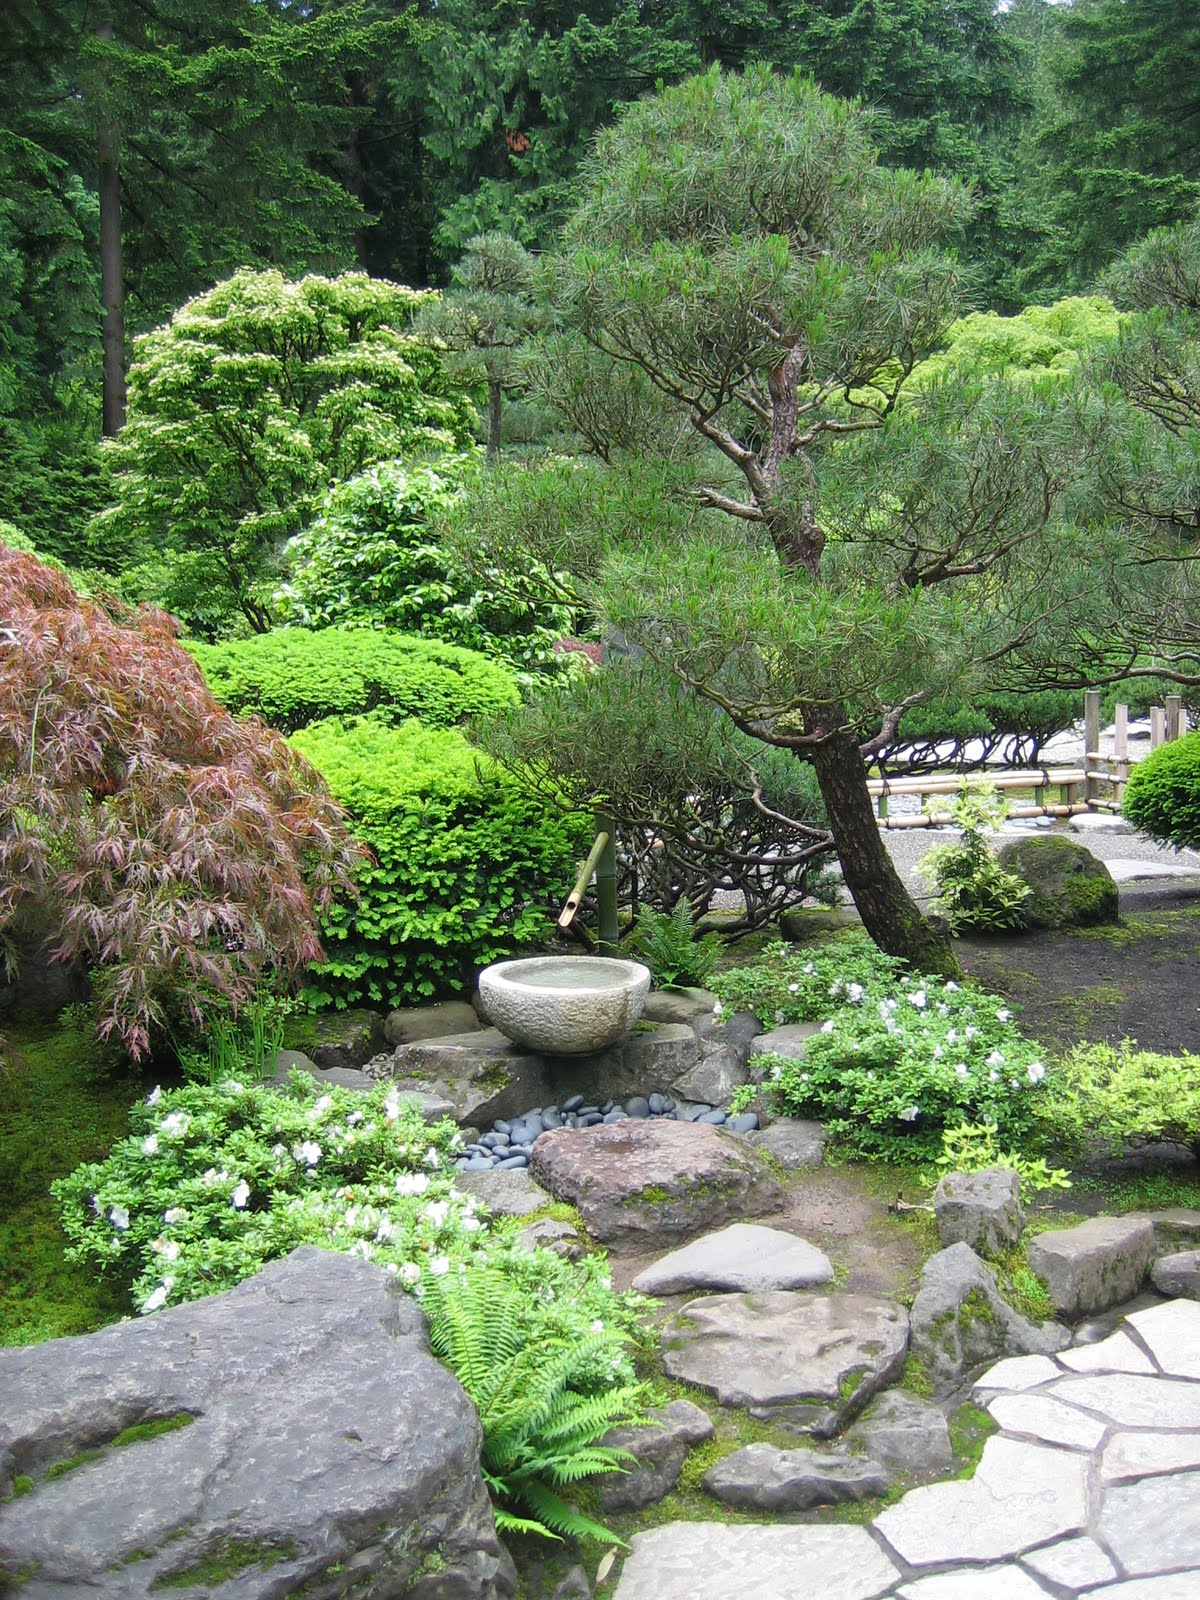 Journeys and jonquils summer travels 2010 part 4 the for Best plants for japanese garden